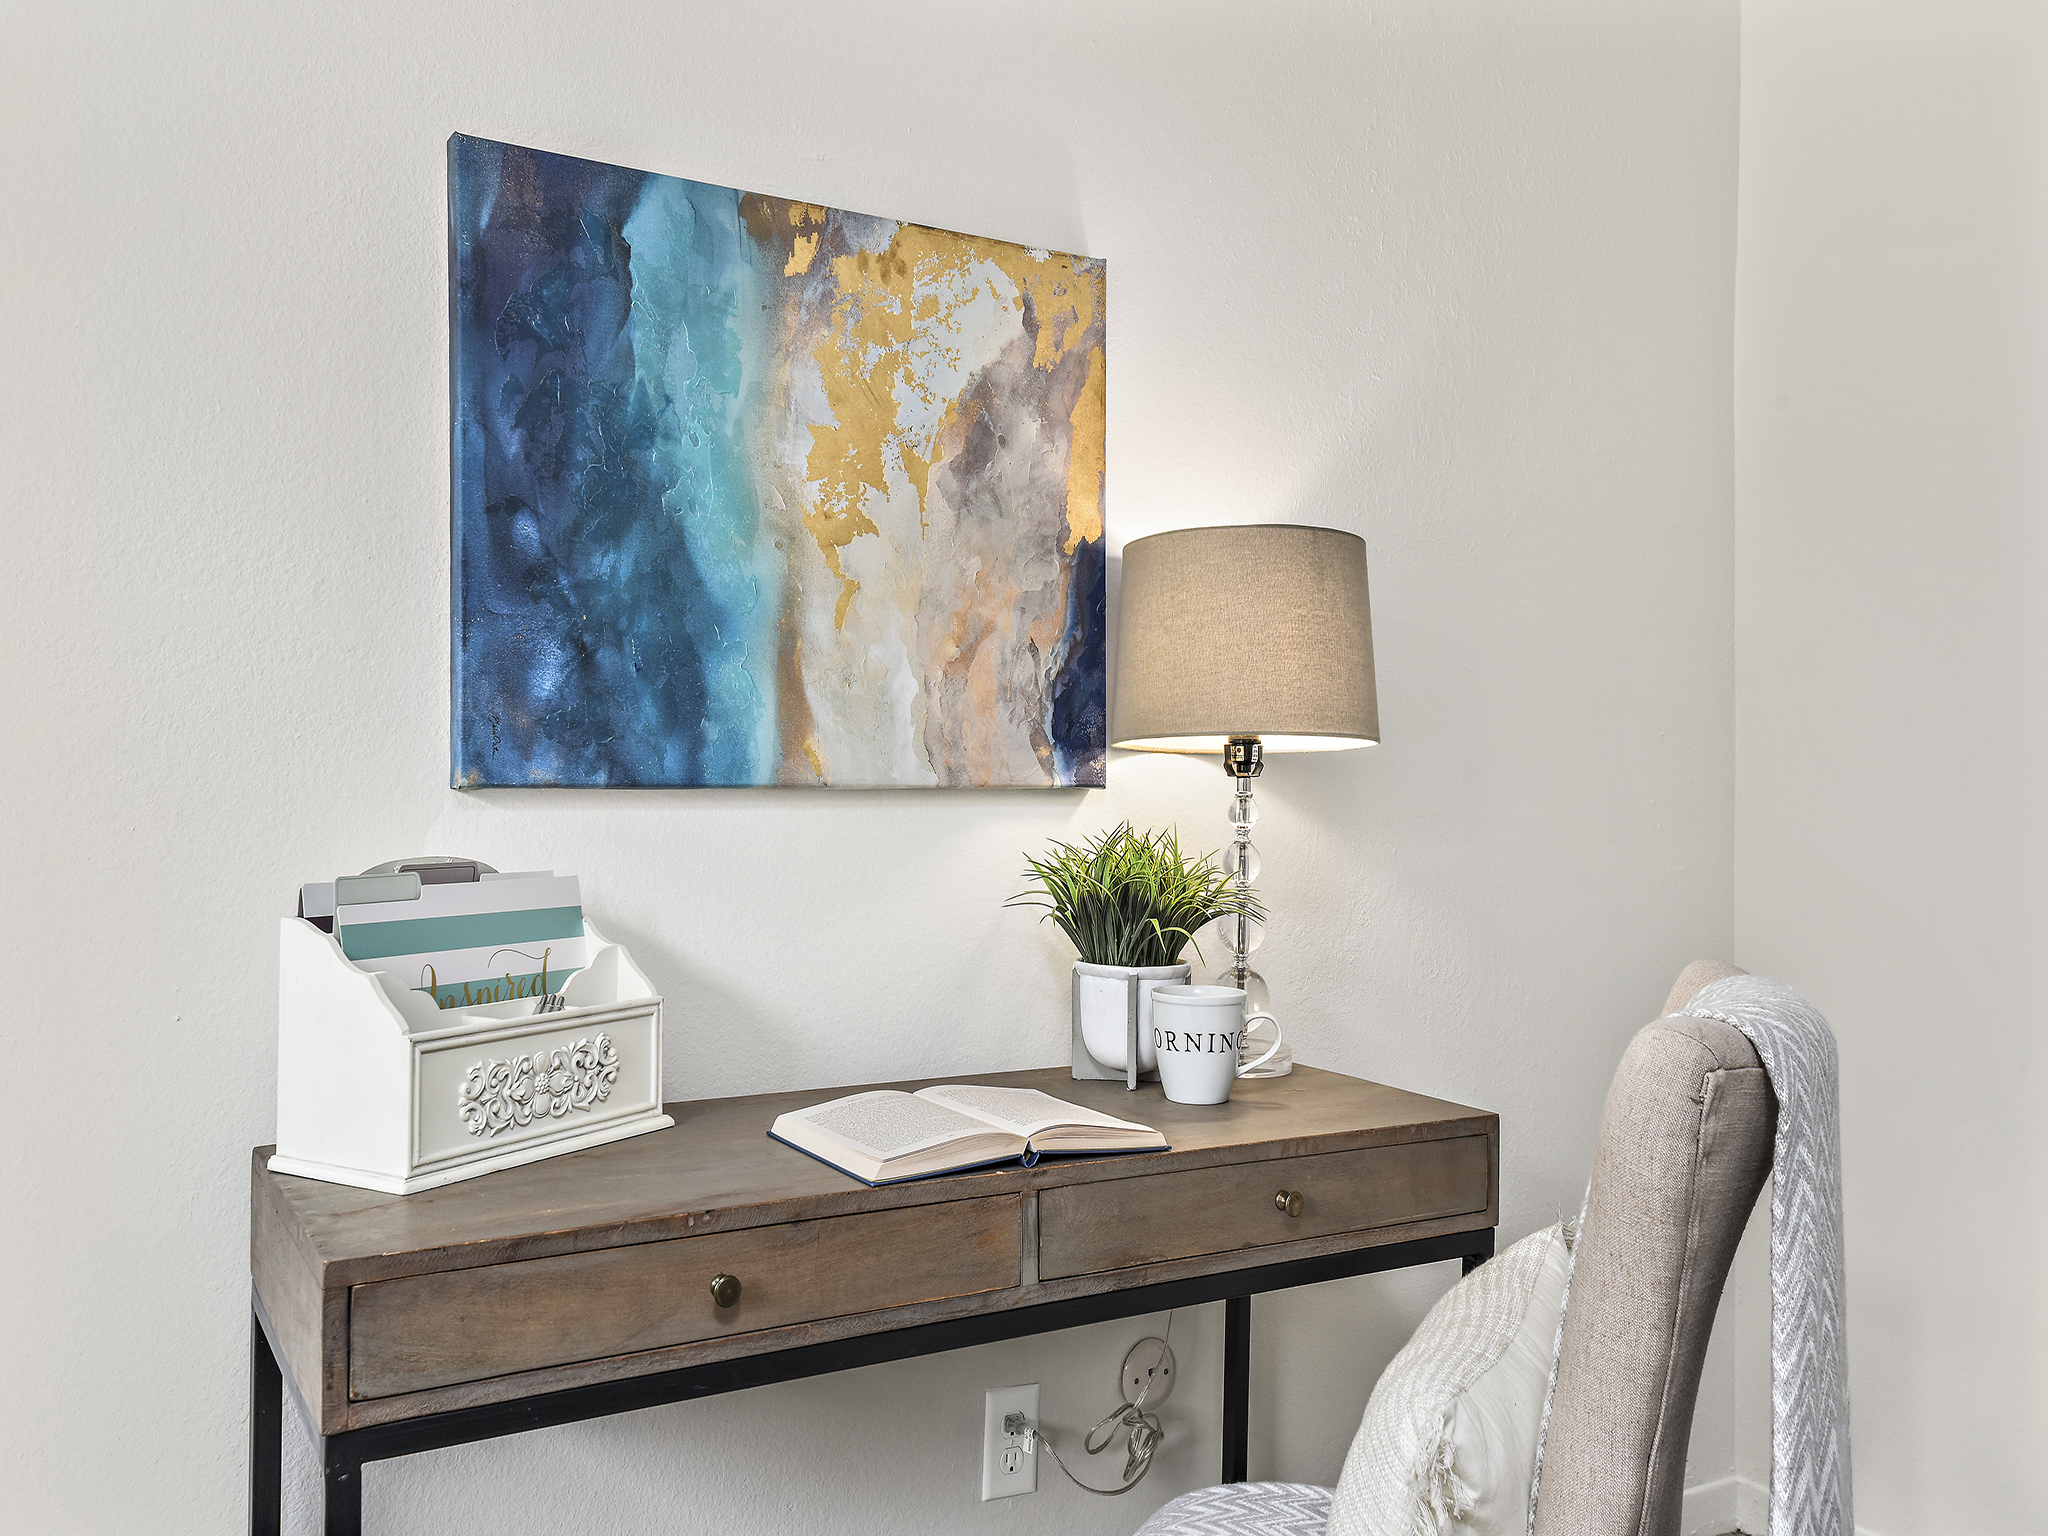 Staging The Nest - Vacant Staging - Master Bedroom Study Area